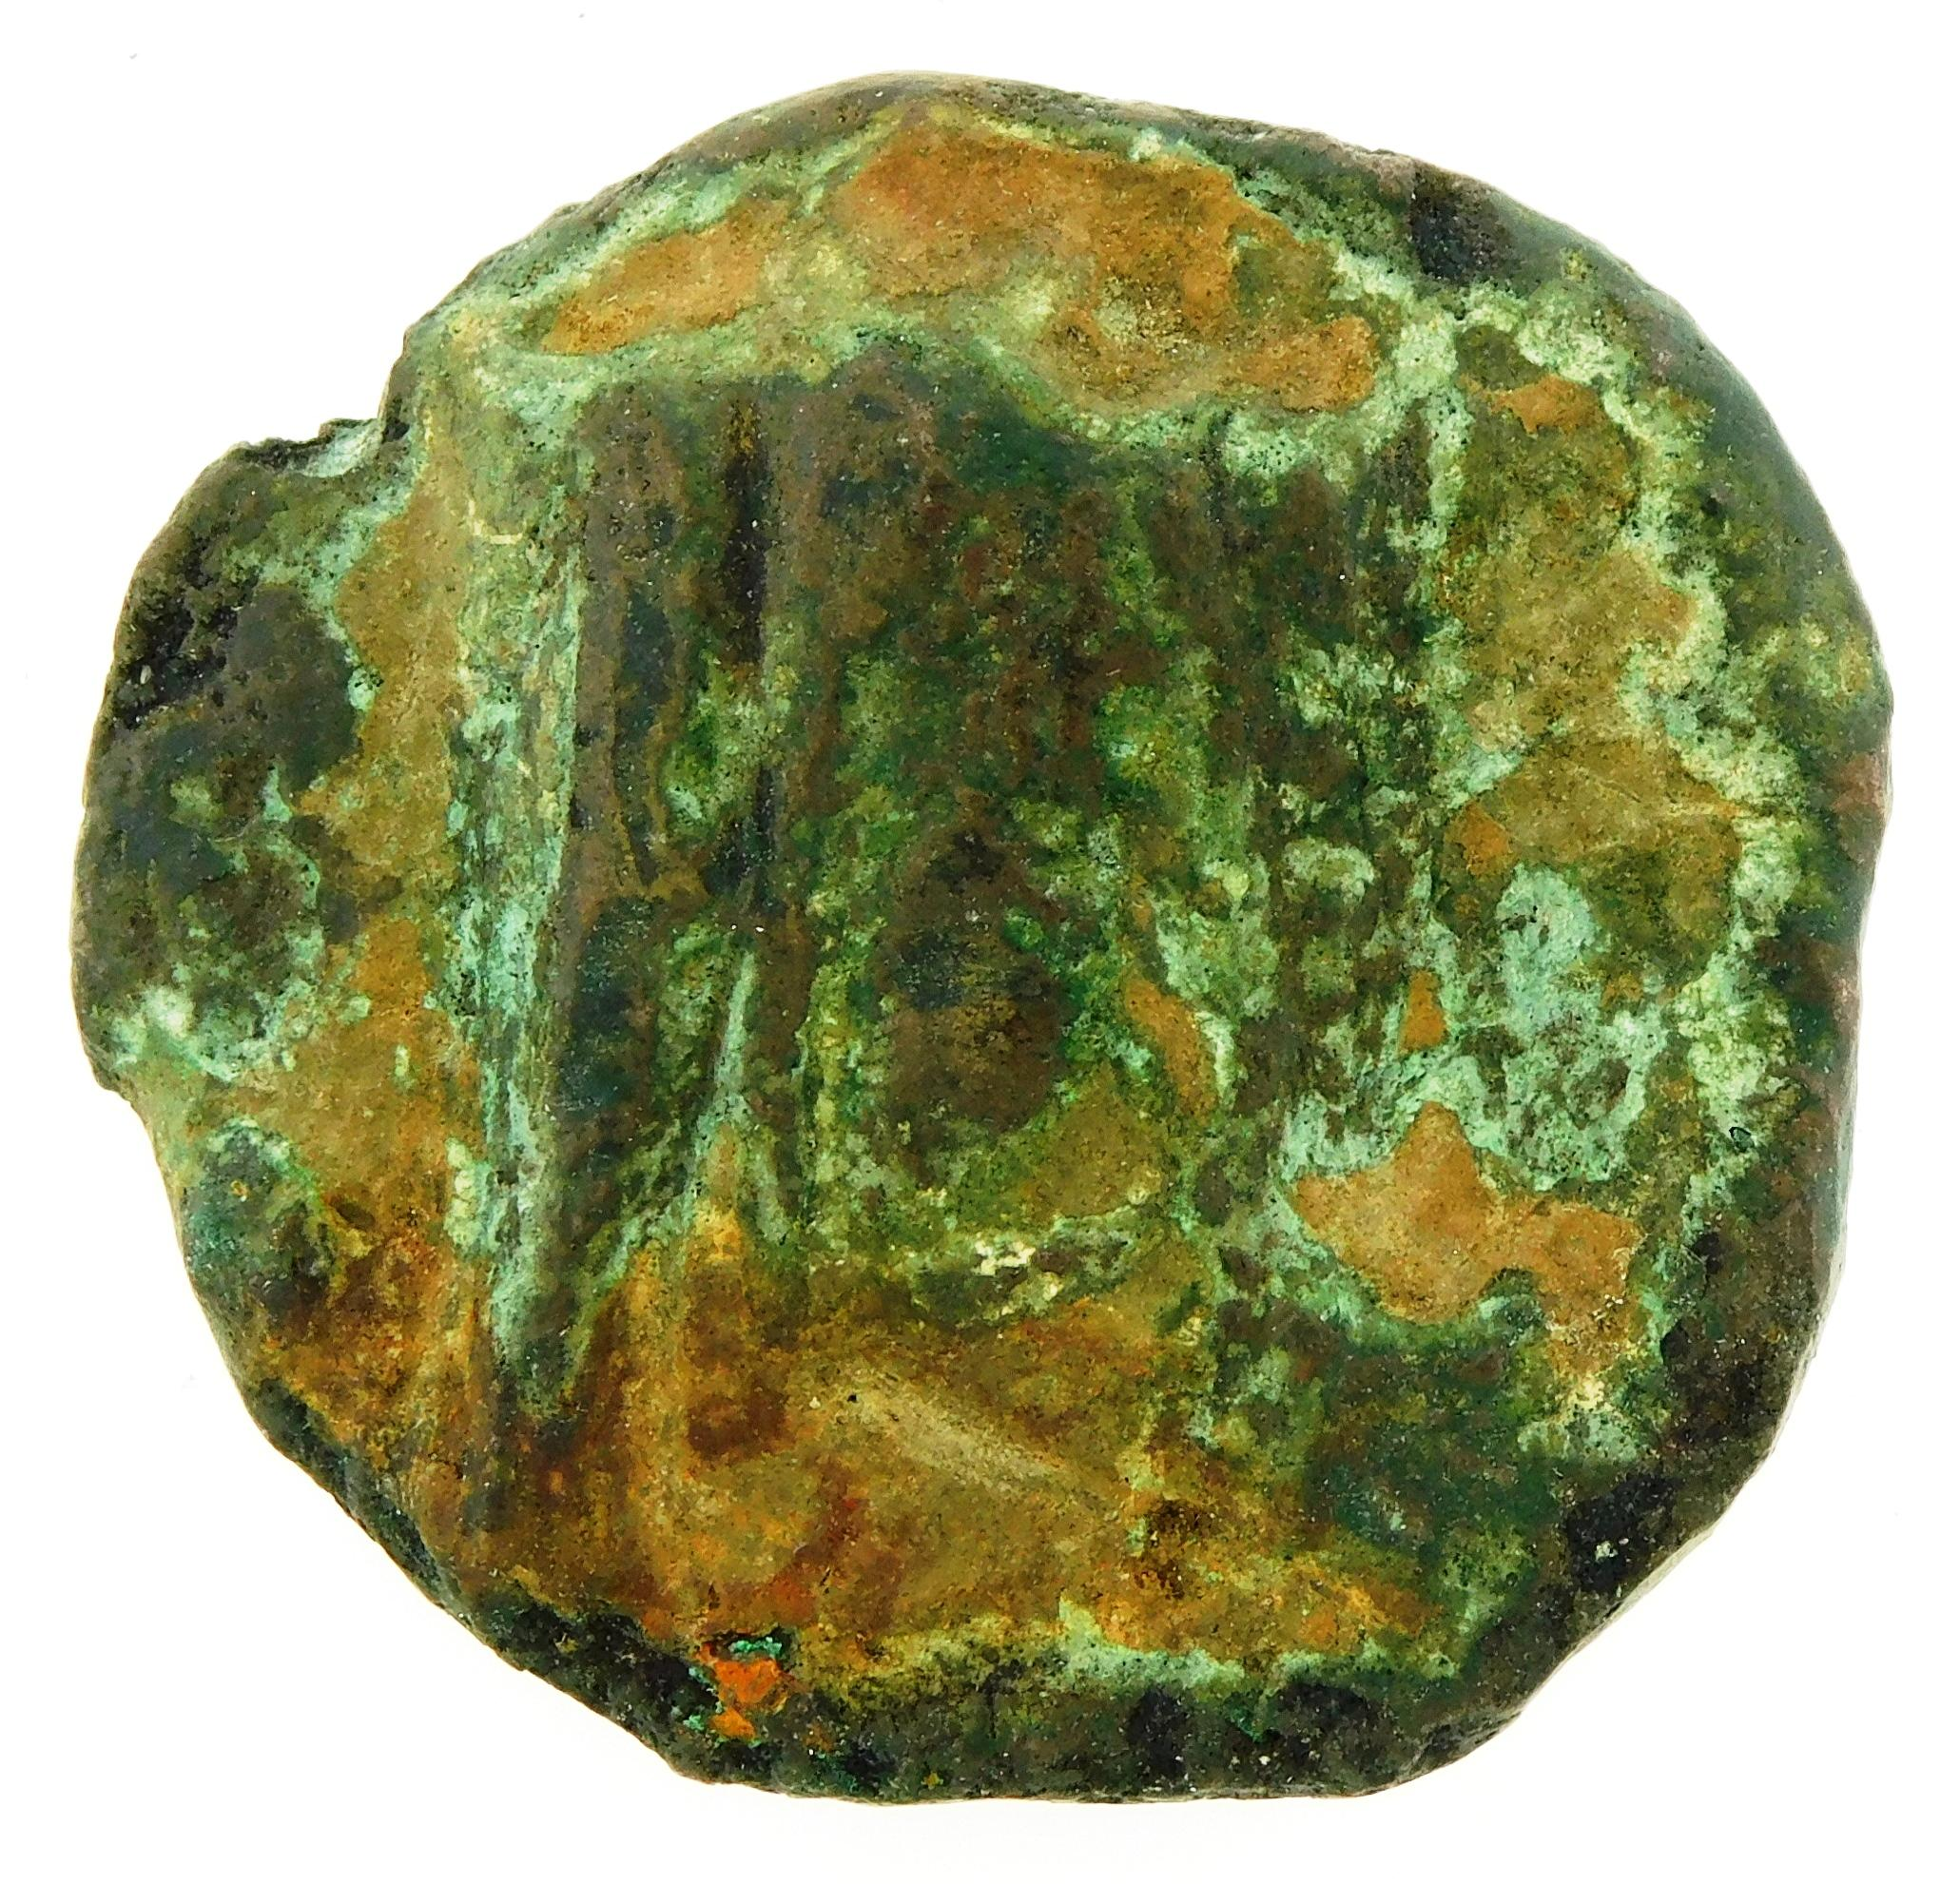 COIN: Ancient Rome. Circa 240-225 BC Anonymous AE Aes Grave Sextans. Head of Mercury left, Prow of Galley. Crawford 35/5. VG for typ...